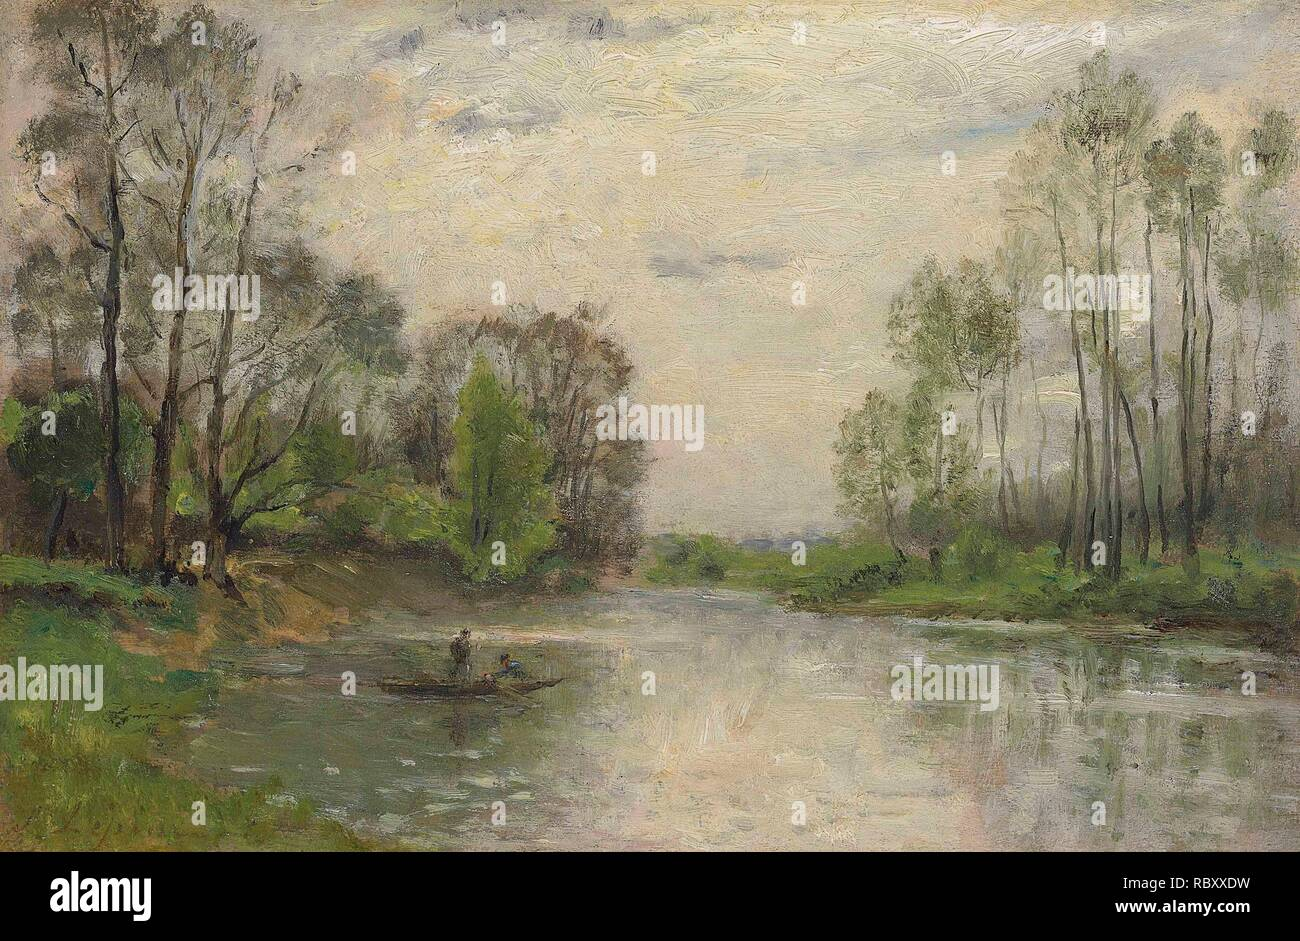 Stanislas-Victor-Edouard Lpine (French, 1835-1892) The banks of the Marne.jpg - RBXXDW Stock Photo